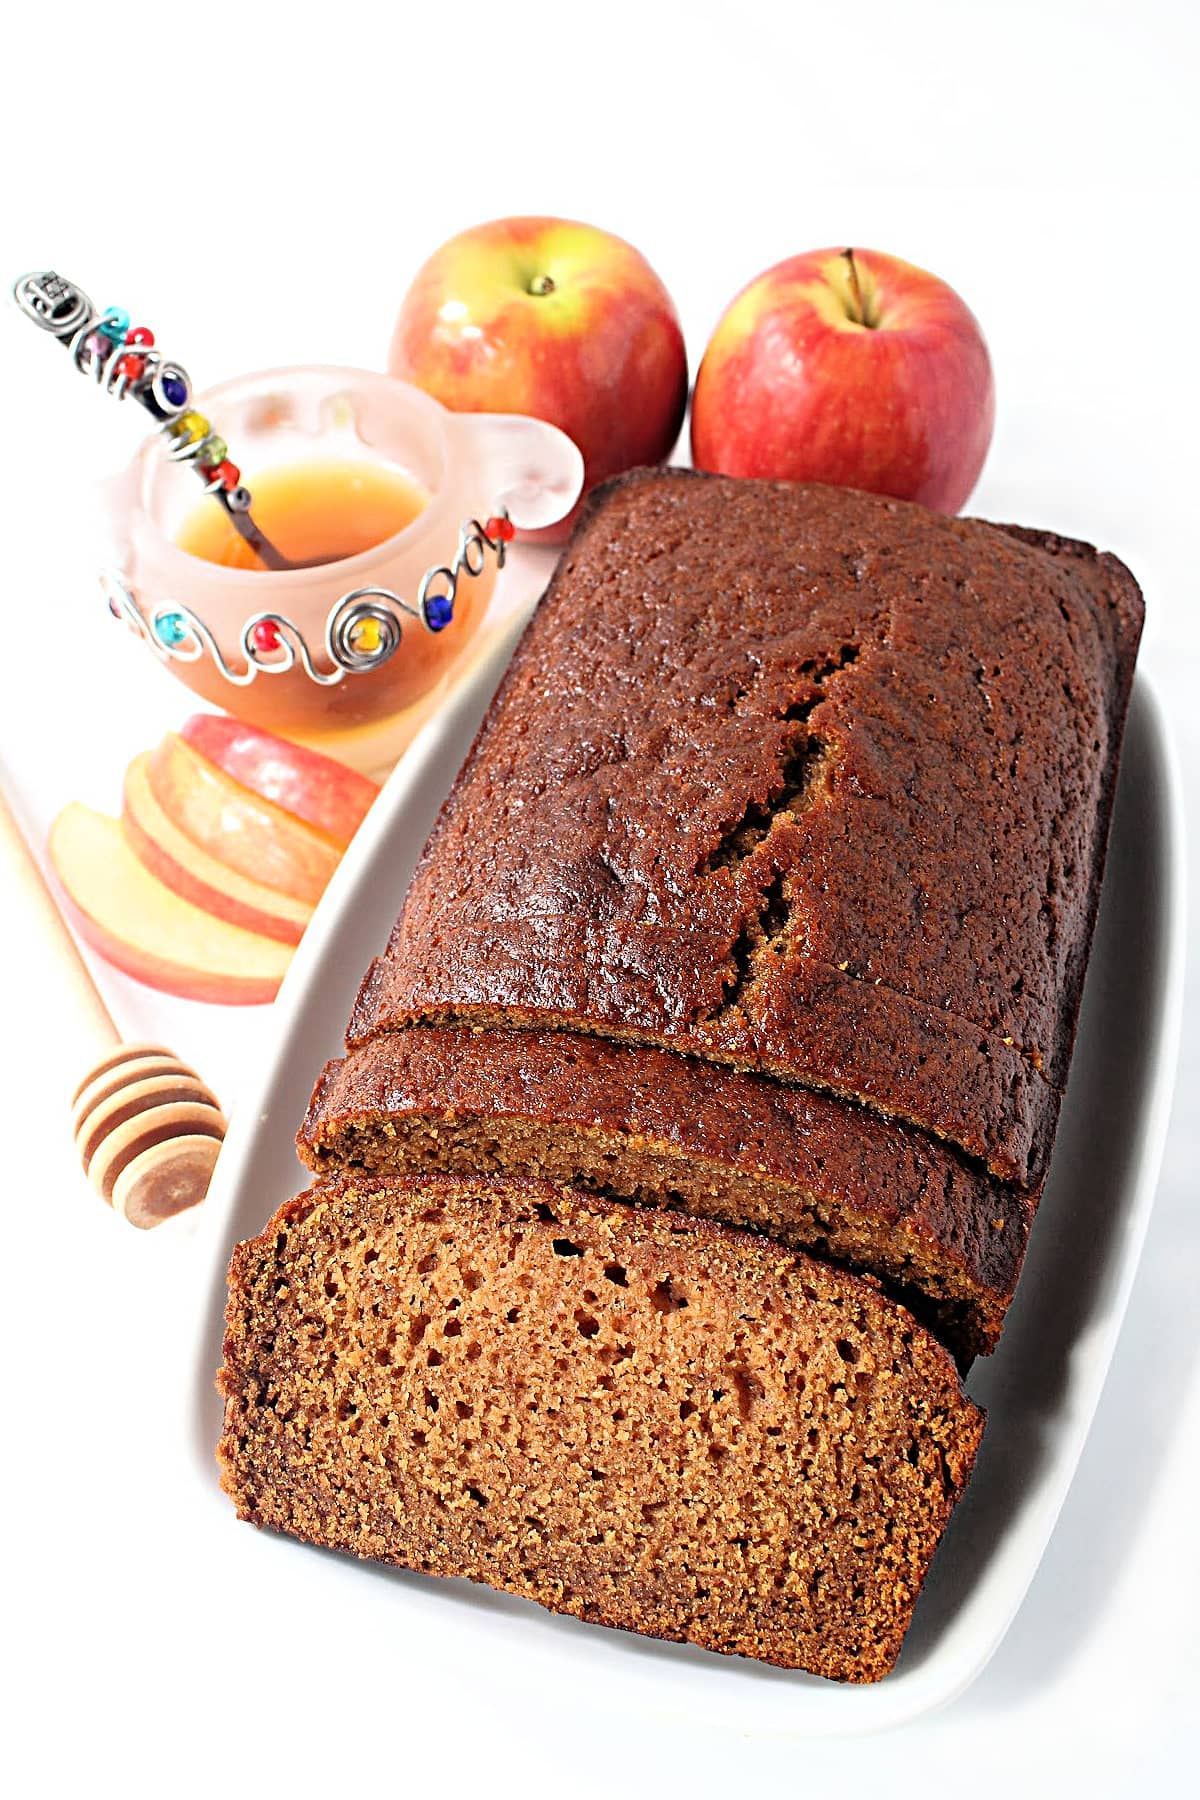 A shiny loaf of sliced Applesauce Honey Cake on a platter with apples and  honey bowl.